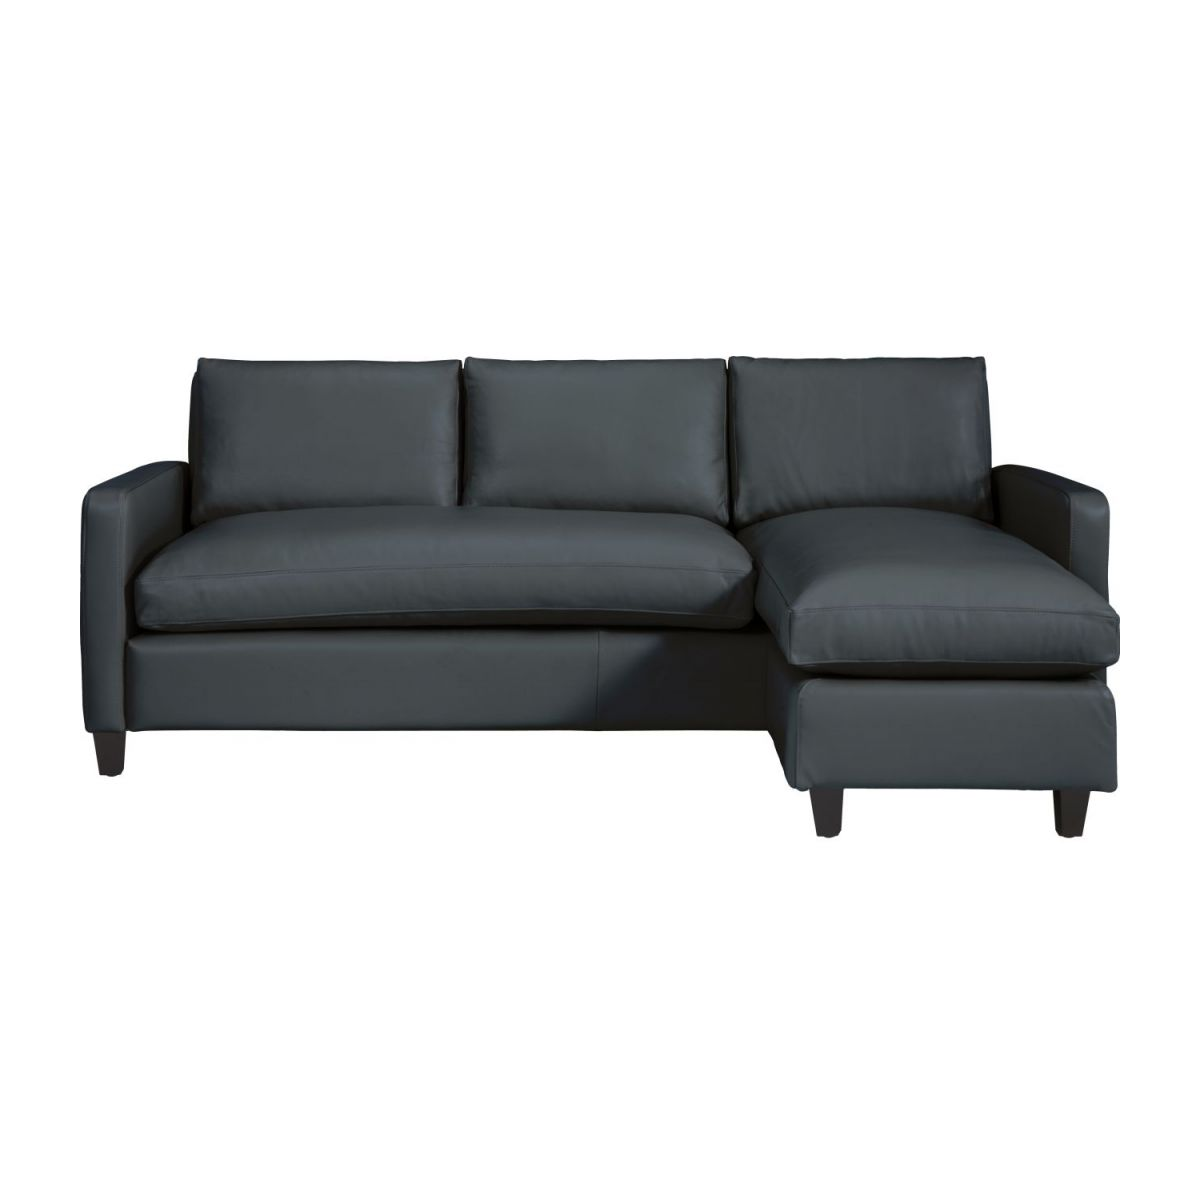 Corner Sofa Bed Leather | Modular Leather Corner Sofa